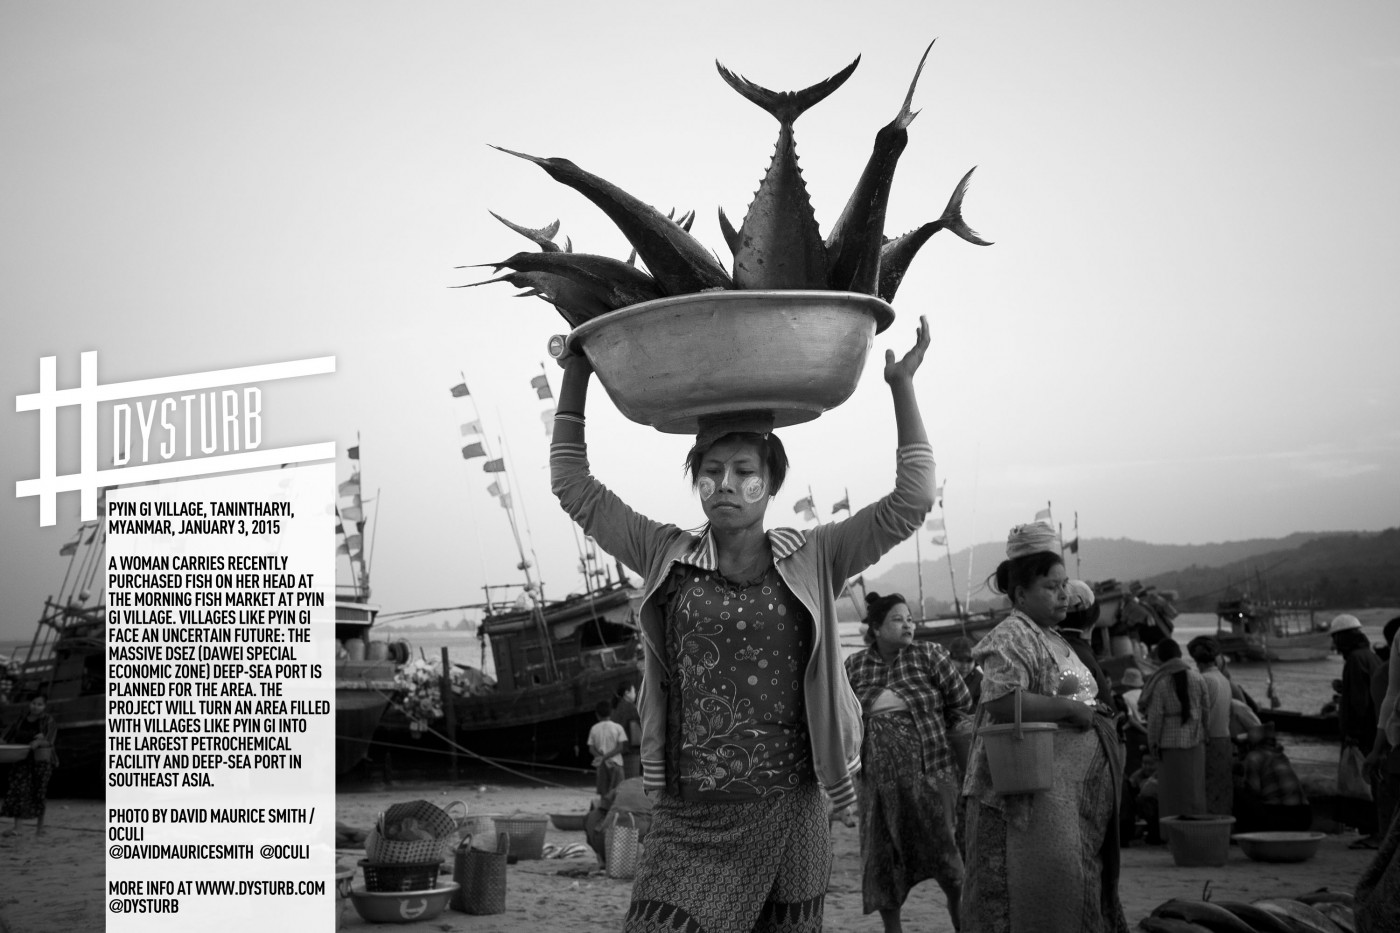 David Maurice Smith, </span><span><em>Pyin Gi Village, Tanintharyi, Myanmar. January 3, 2015. A woman carries recently purchased fish on her head at the morning fish market at Pyin Gi Village. Villages like Pyin Gi face an uncertain future as the development of the massive DSEZ (Dawei Special Economic Zone) deep sea port will impact the area on many levels. The project will turn an area filled with villages like Pyin Gi into the largest petrochemical facility and deep sea port in Southeast Asia. Courtesy of Oculi.</em>